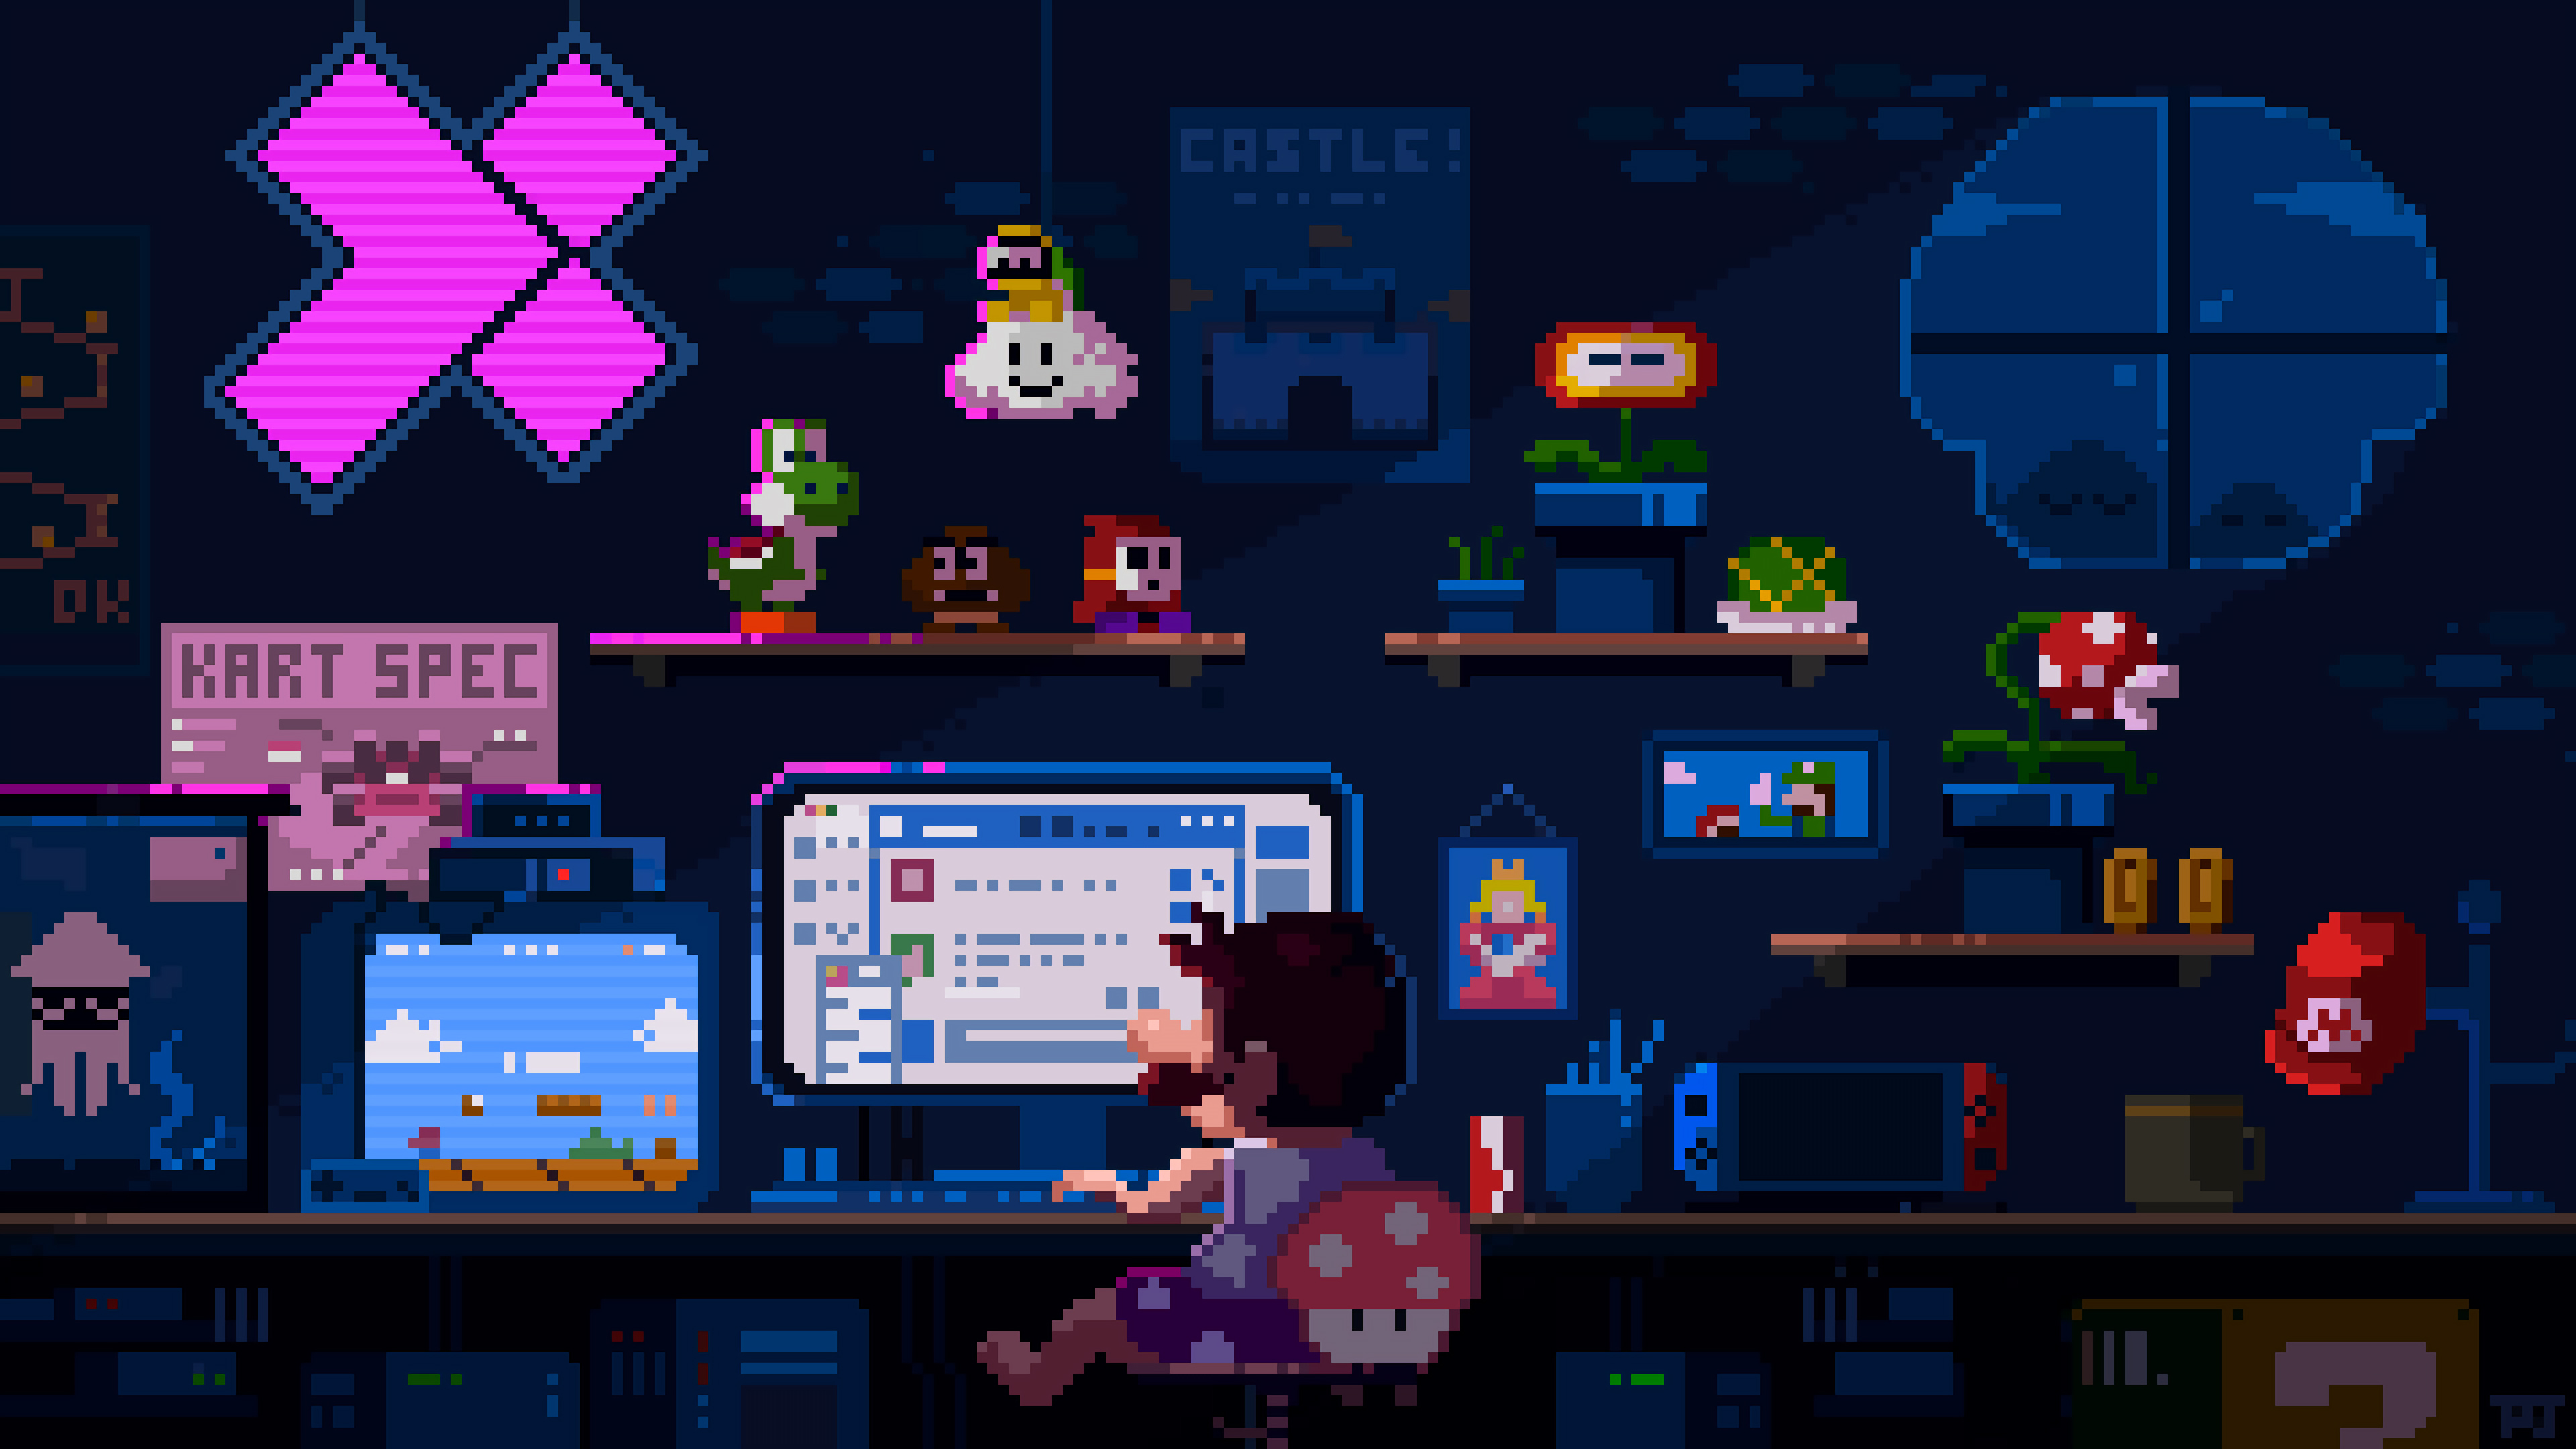 General 3840x2160 Super Mario pixel art Super Mario Kart computer mushroom night Nintendo Nintendo Switch Donkey Kong Yoshi Peach Luigi Goomba Shy Guy